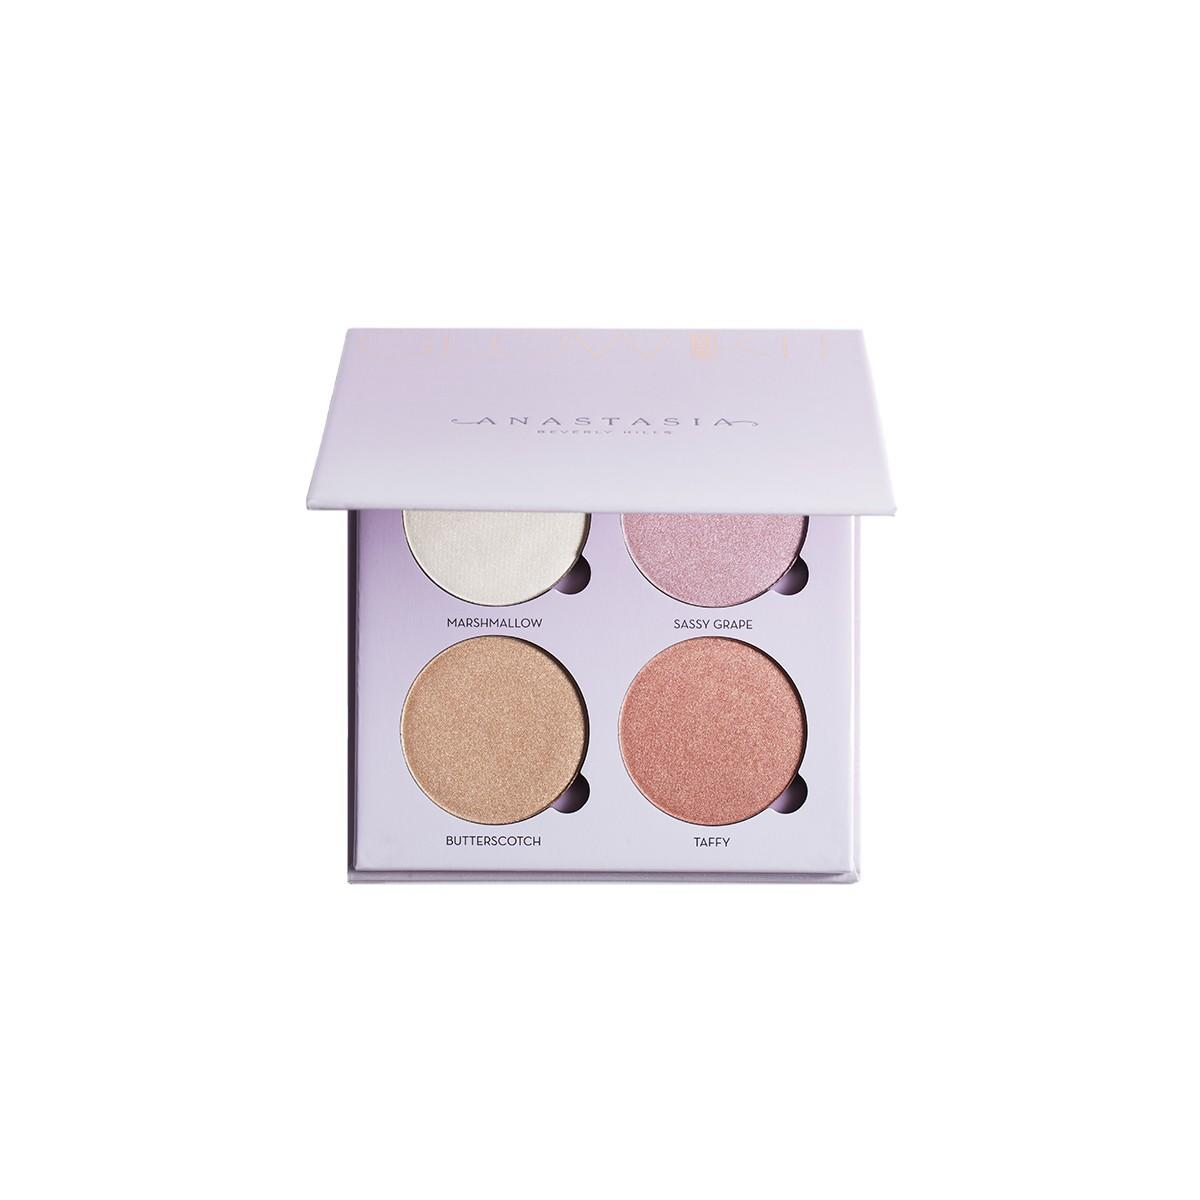 Anastasia Glow Kit Sweets